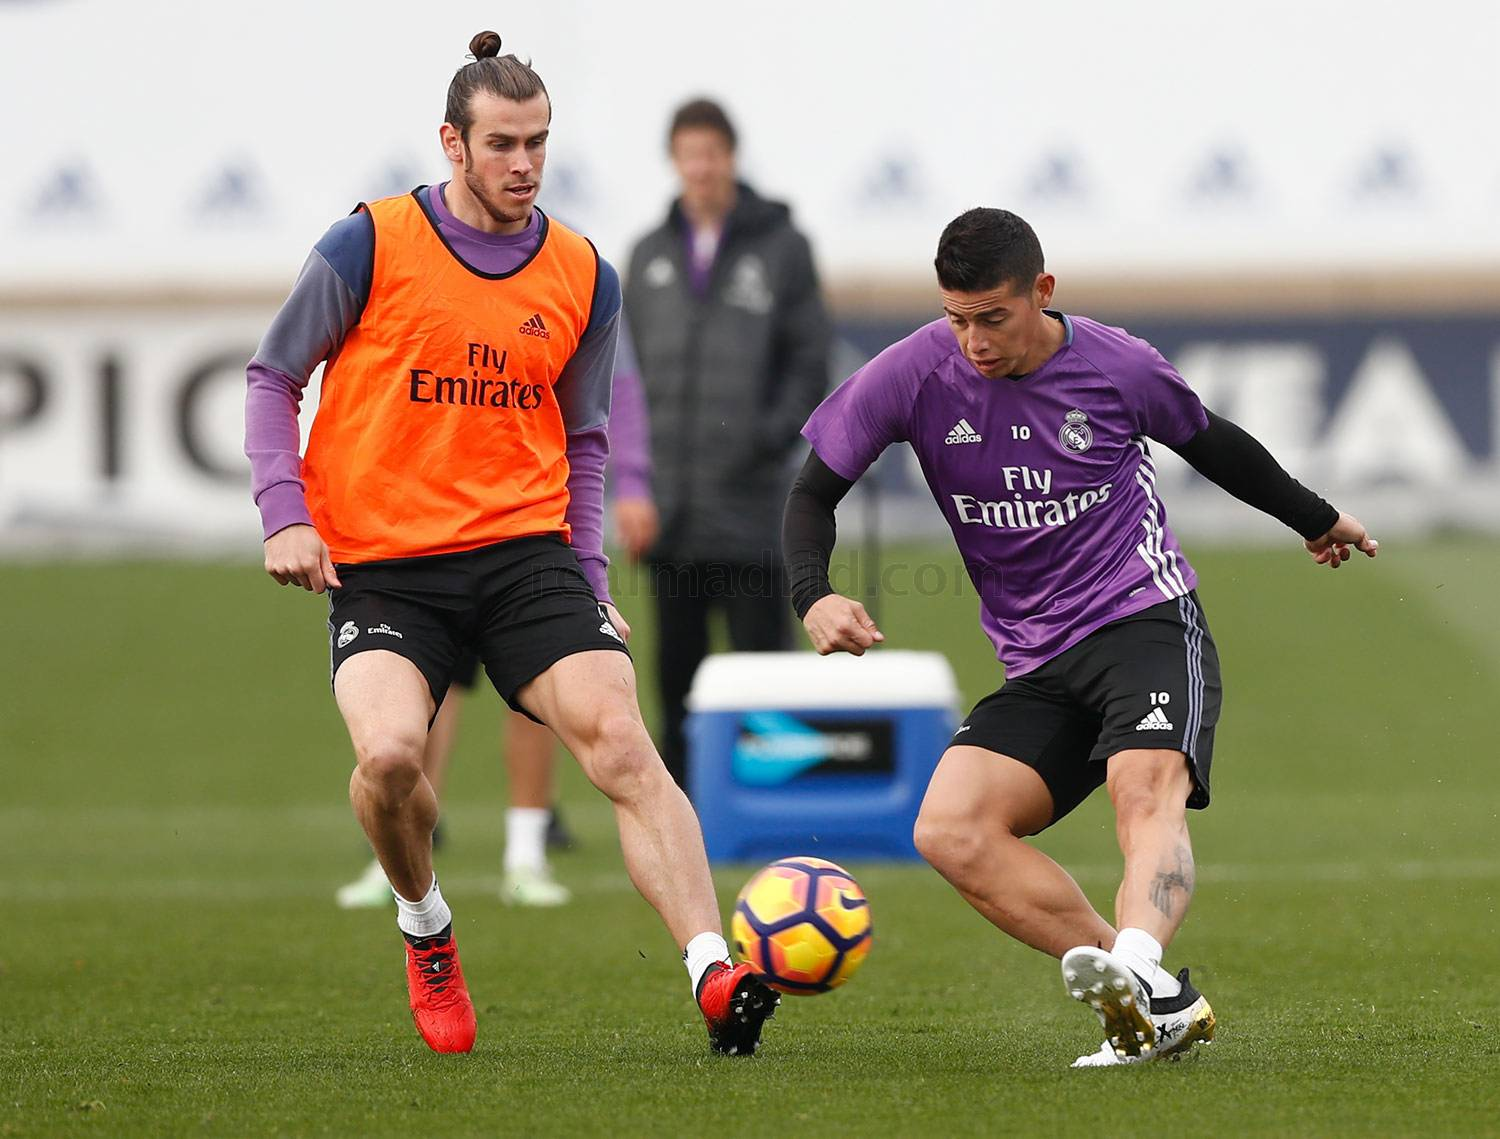 Real Madrid - Entrenamiento del Real Madrid - 18-11-2016